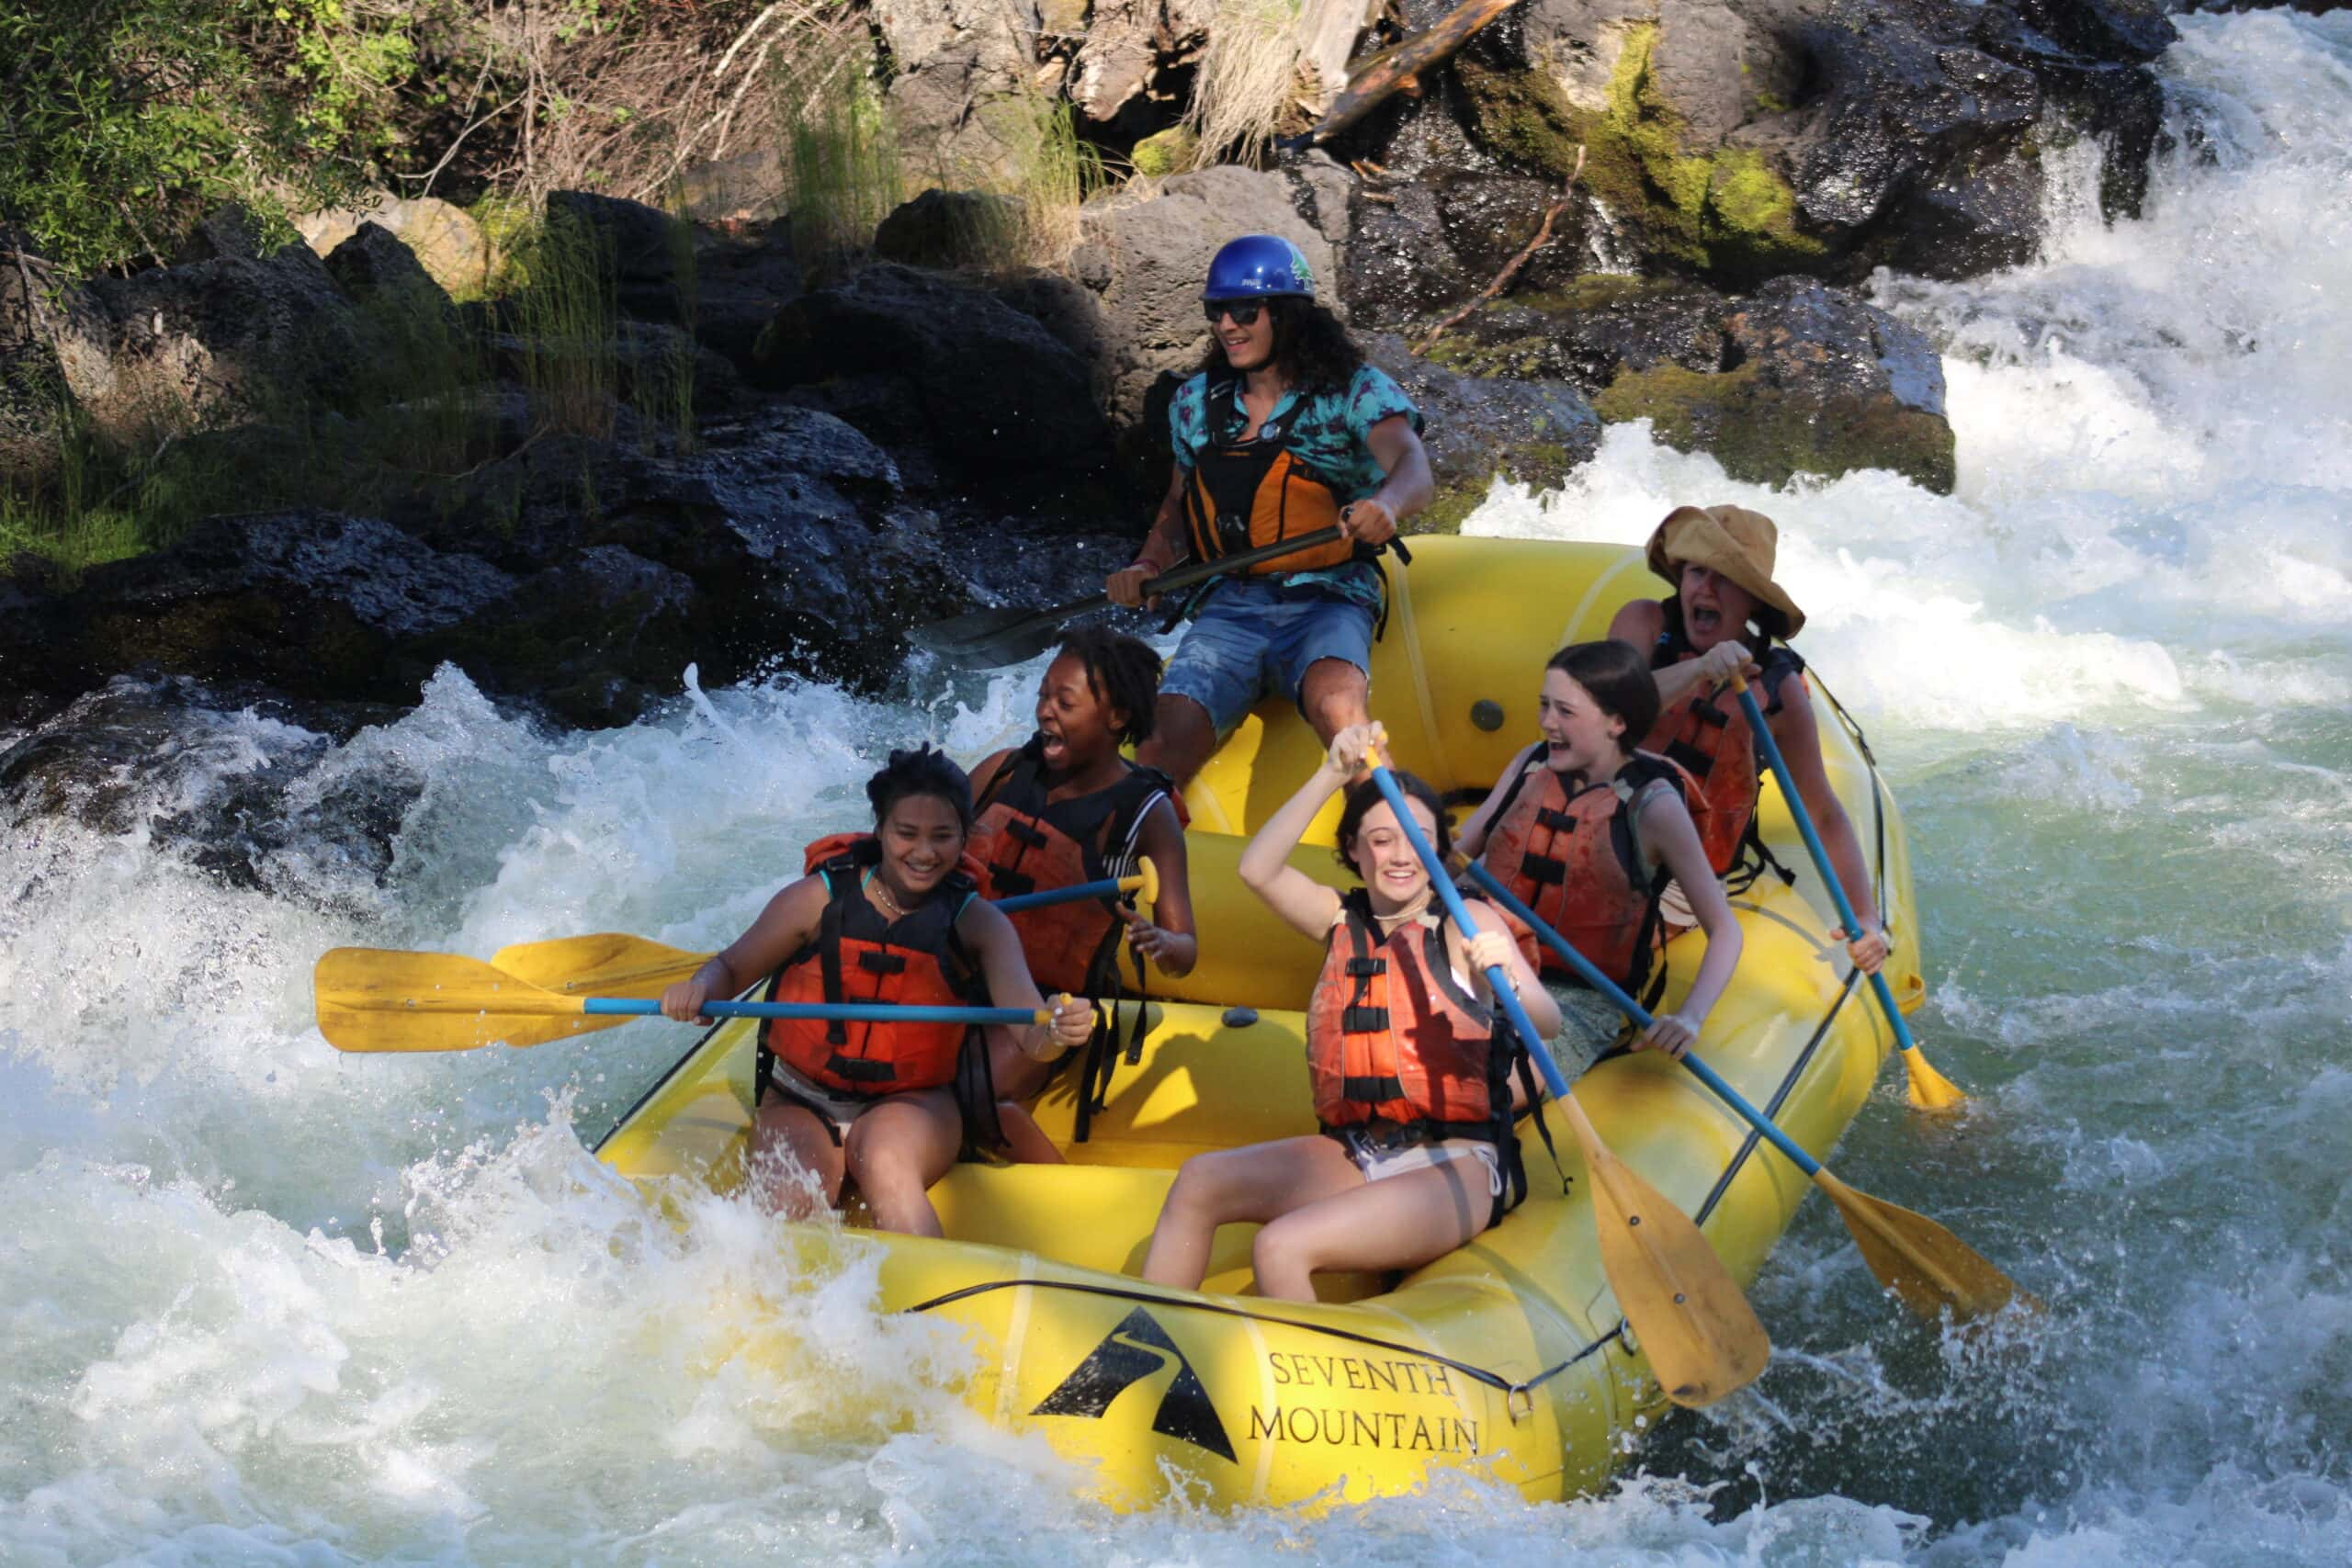 river rafting with Sun Mountain Tours